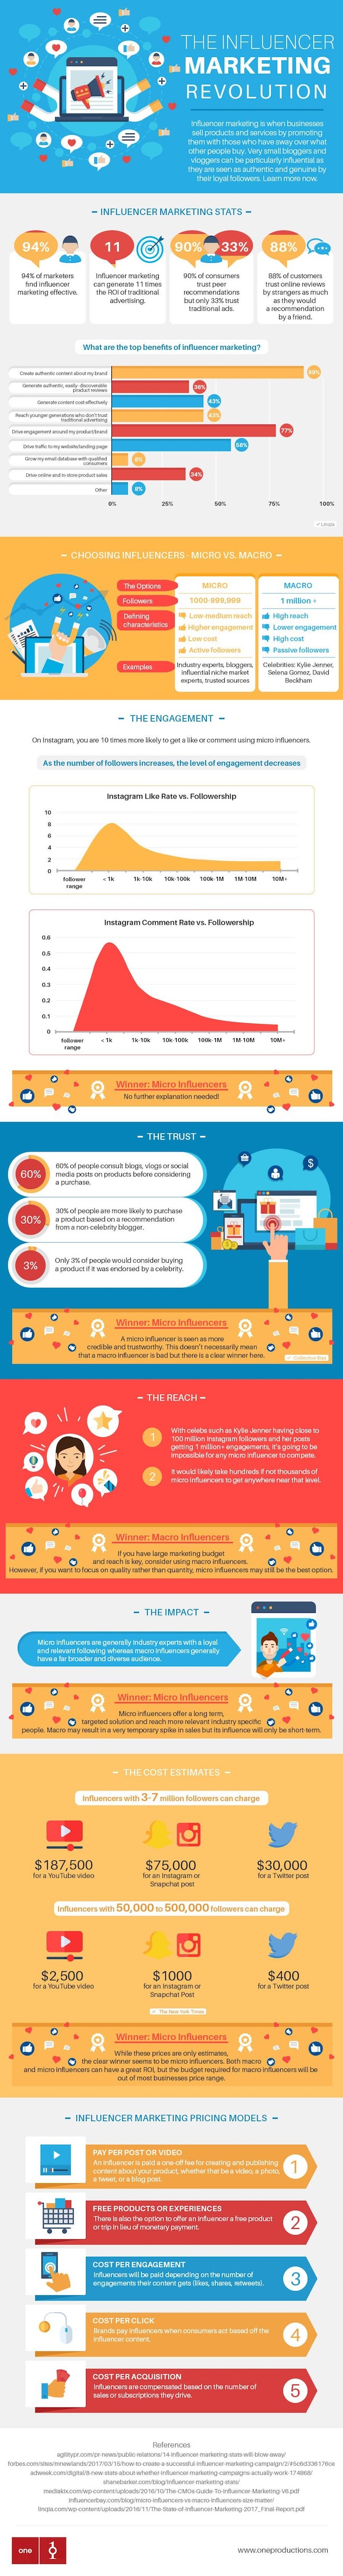 infographie sur le marketing d'influenceur